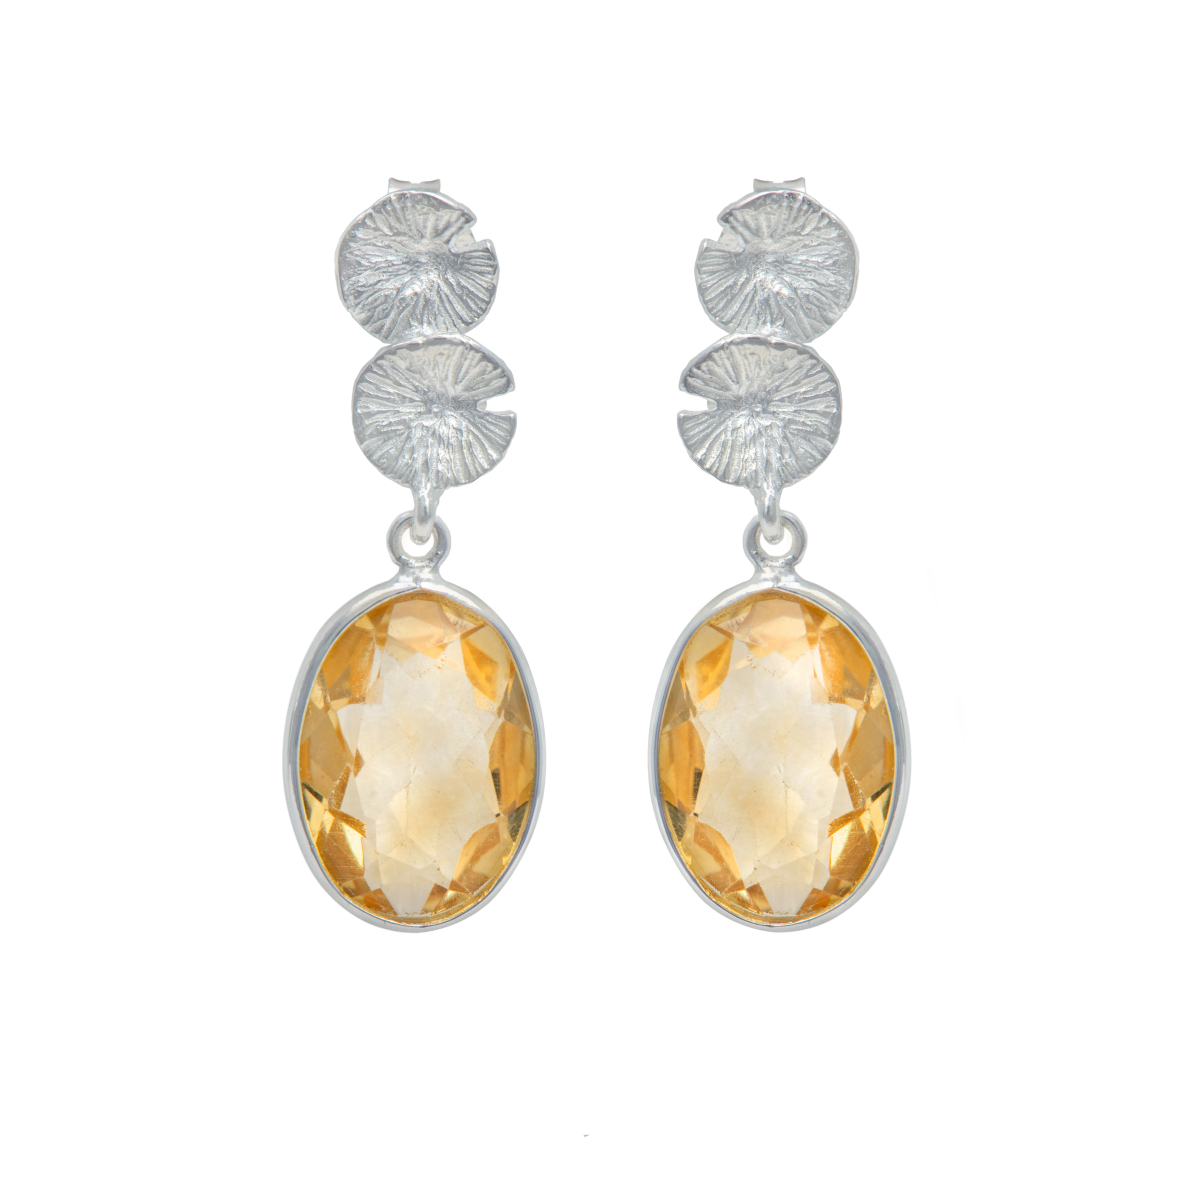 Lily Pad Earrings in Sterling Silver with a Citrine Gemstone Drop